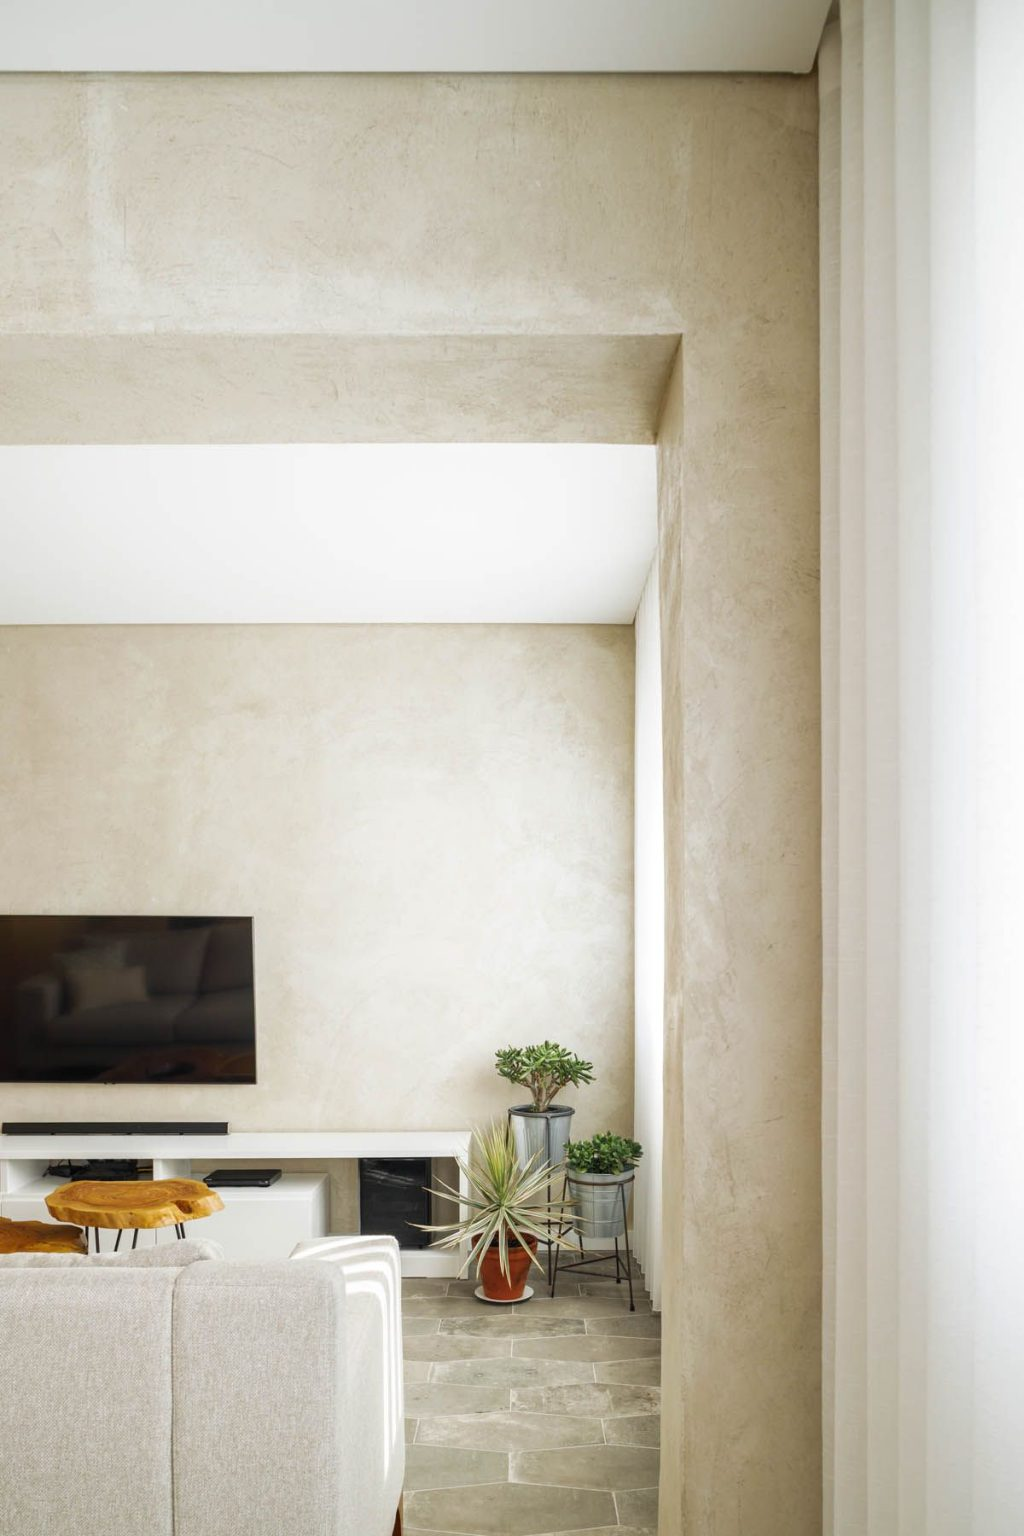 Renovated apartment during the pandemic, Paulo Moreira architectures